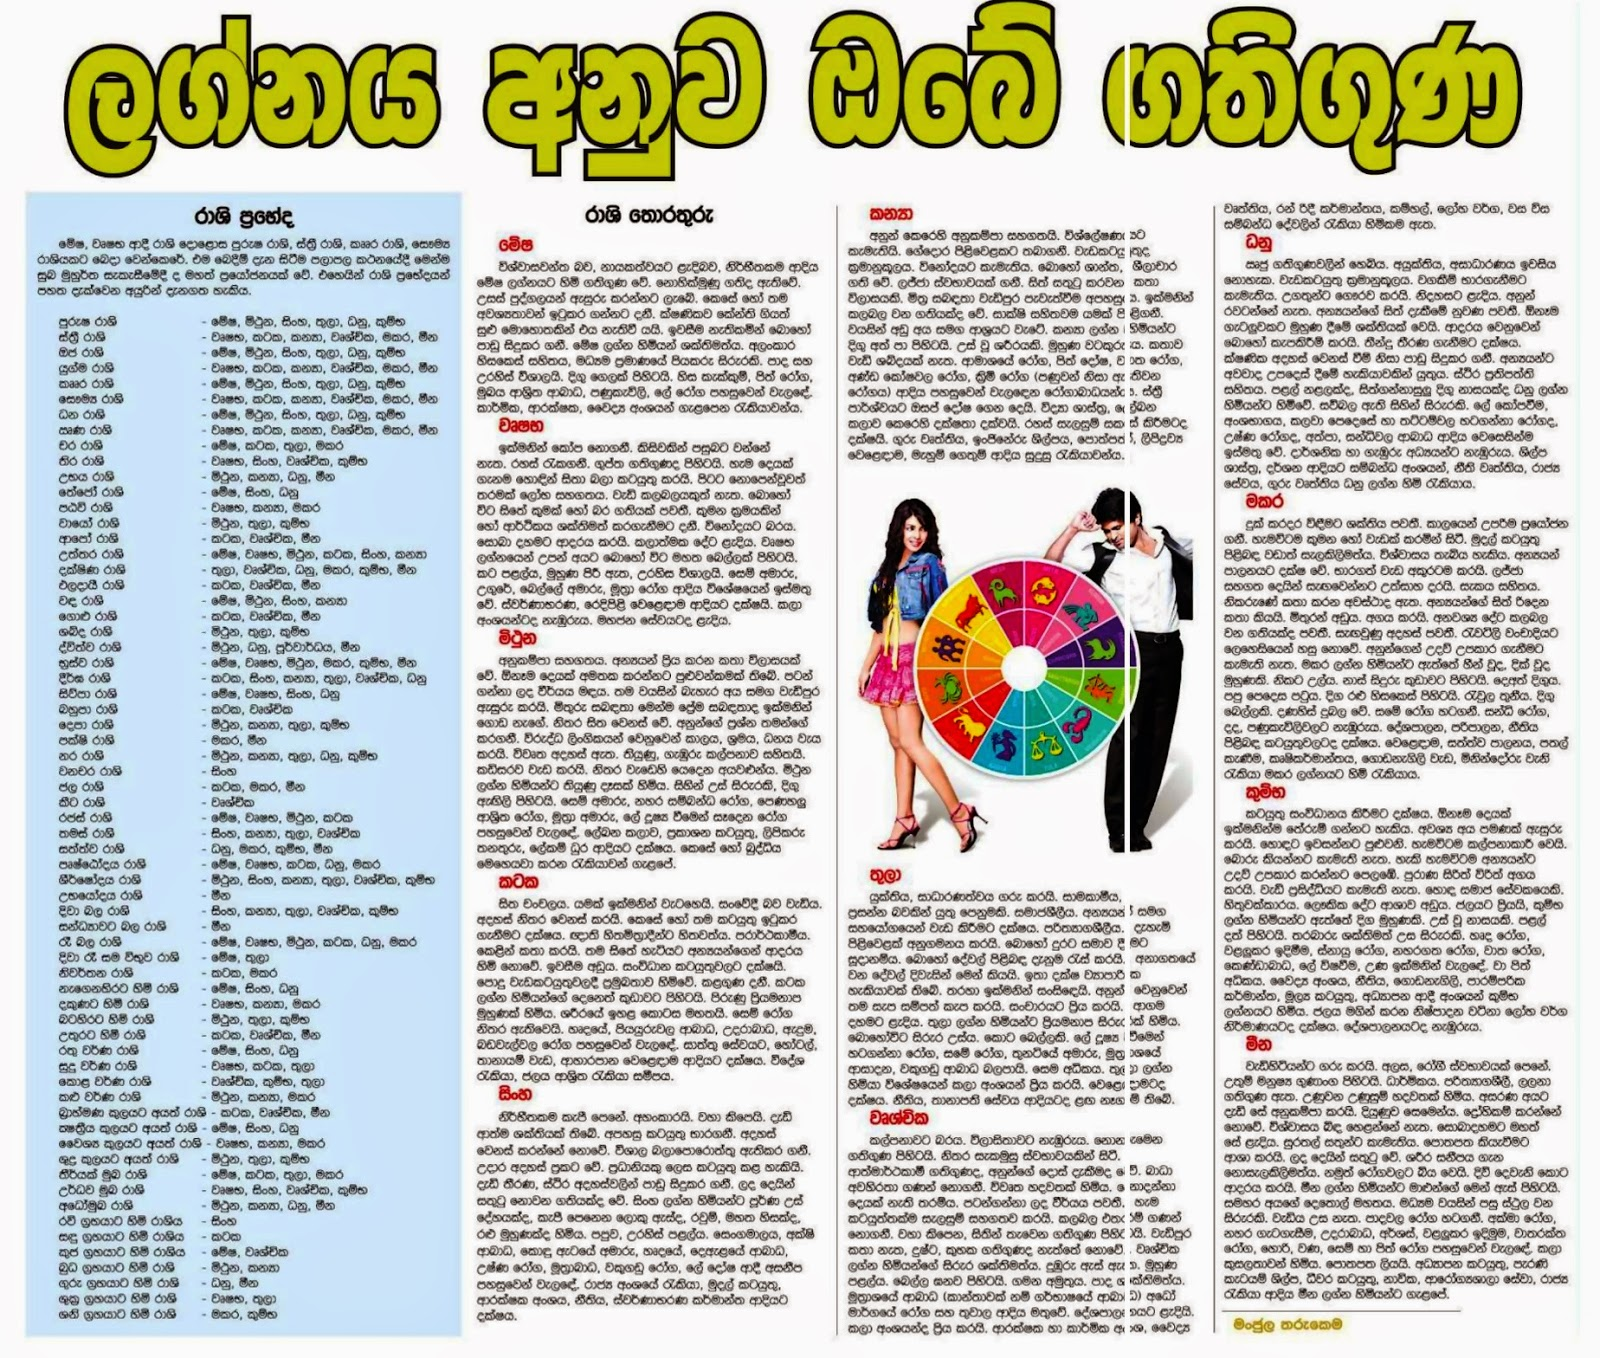 lankadeepa newspaper sinhala today